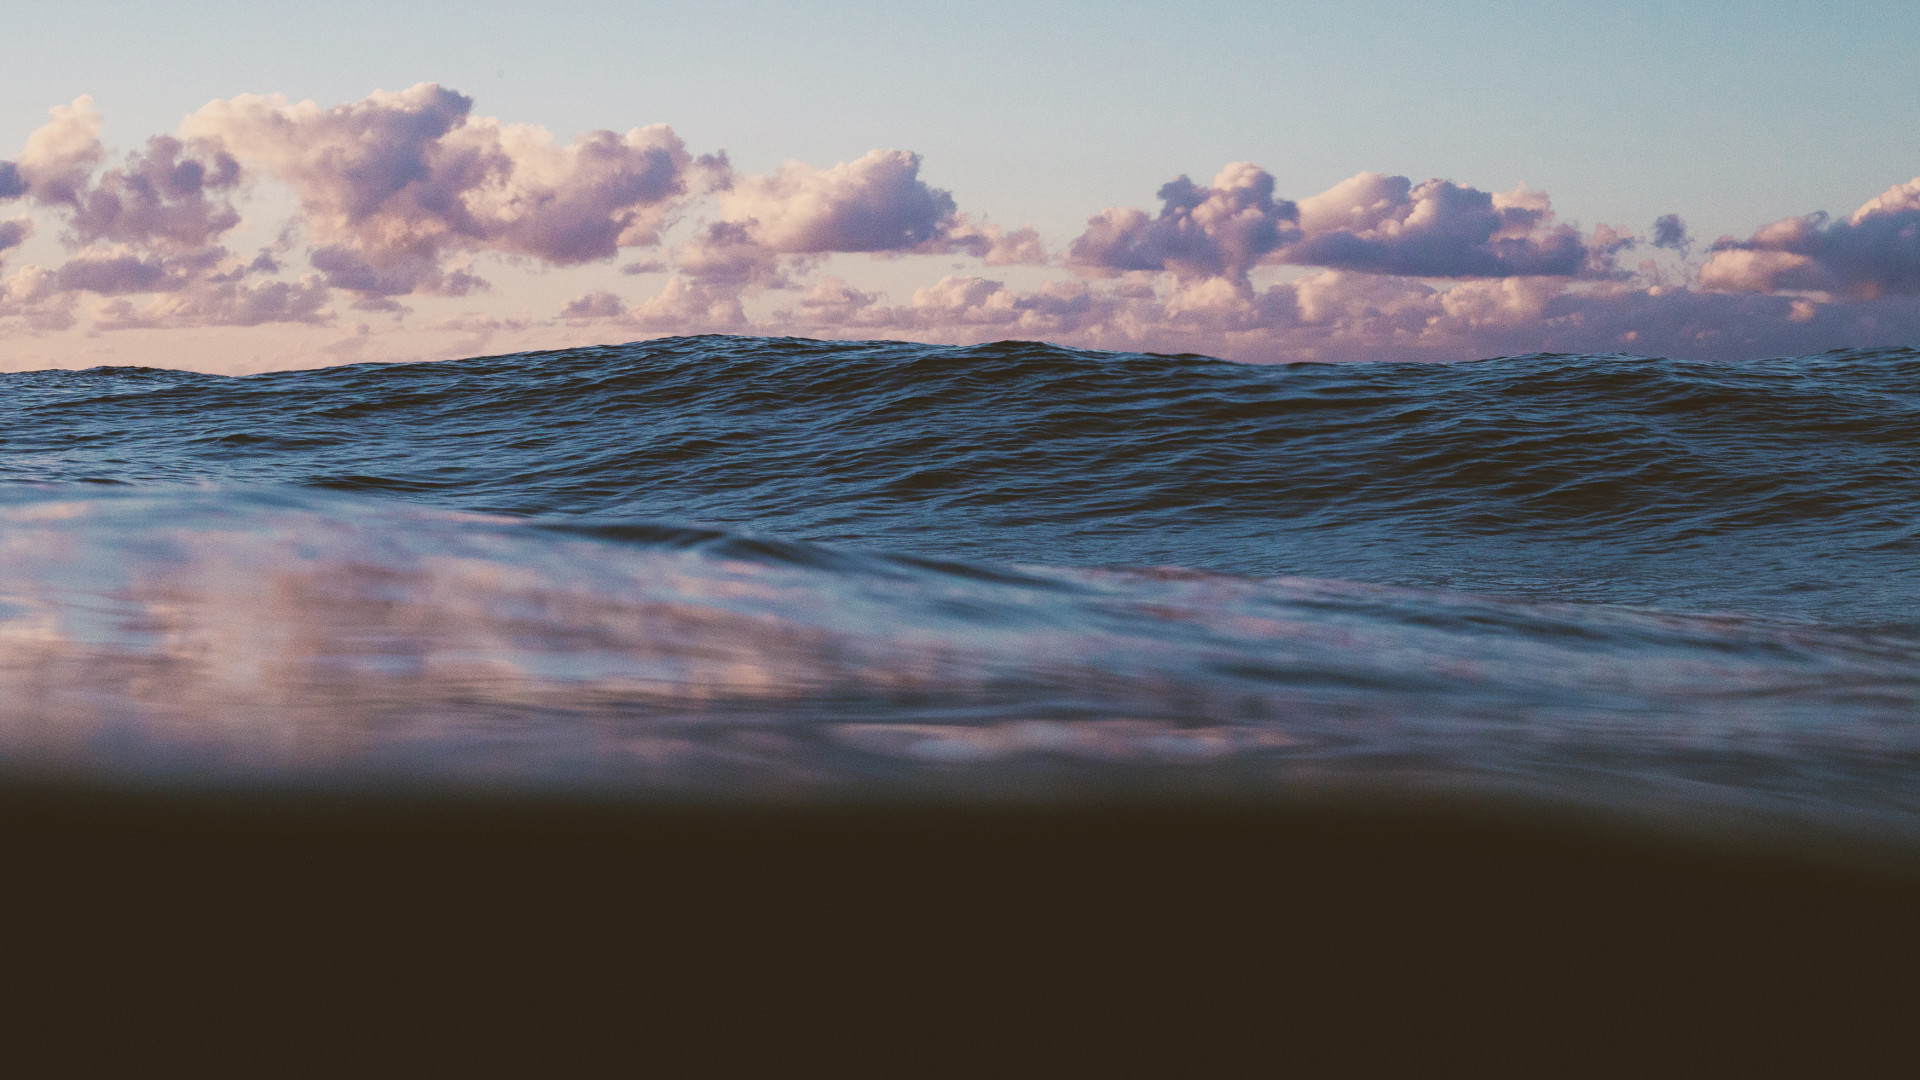 A rising wave with clouds reflected in the water